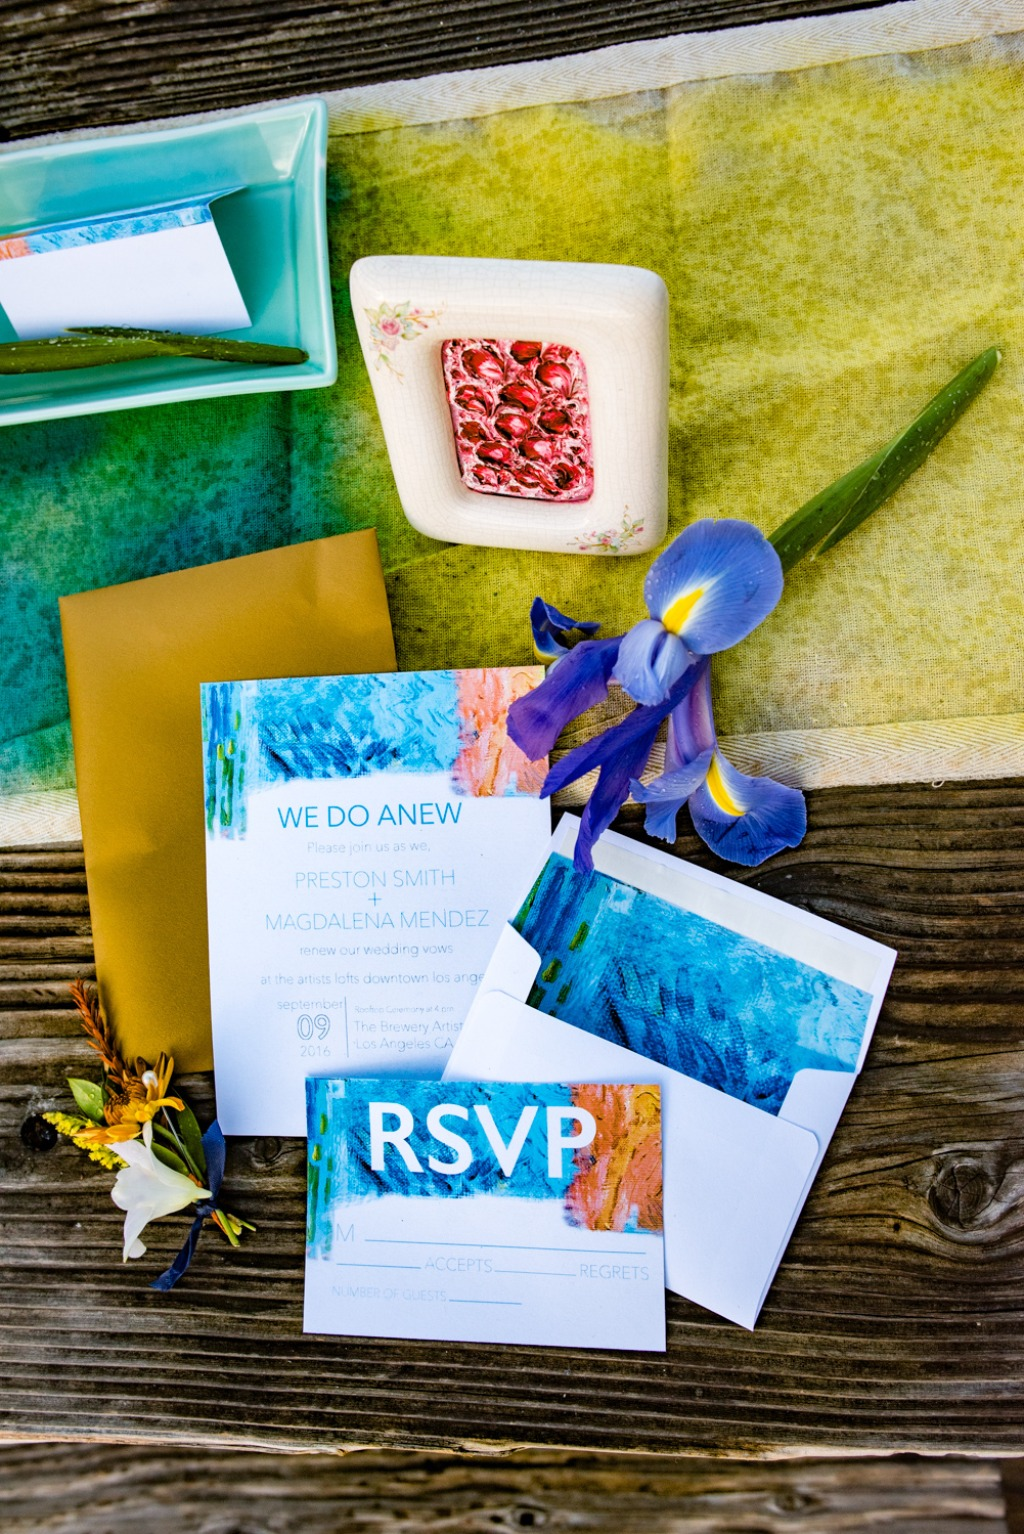 This abstract-art inspired vow renewal's design was heavily influenced by our artist groom's paintings. The bold colors he used in